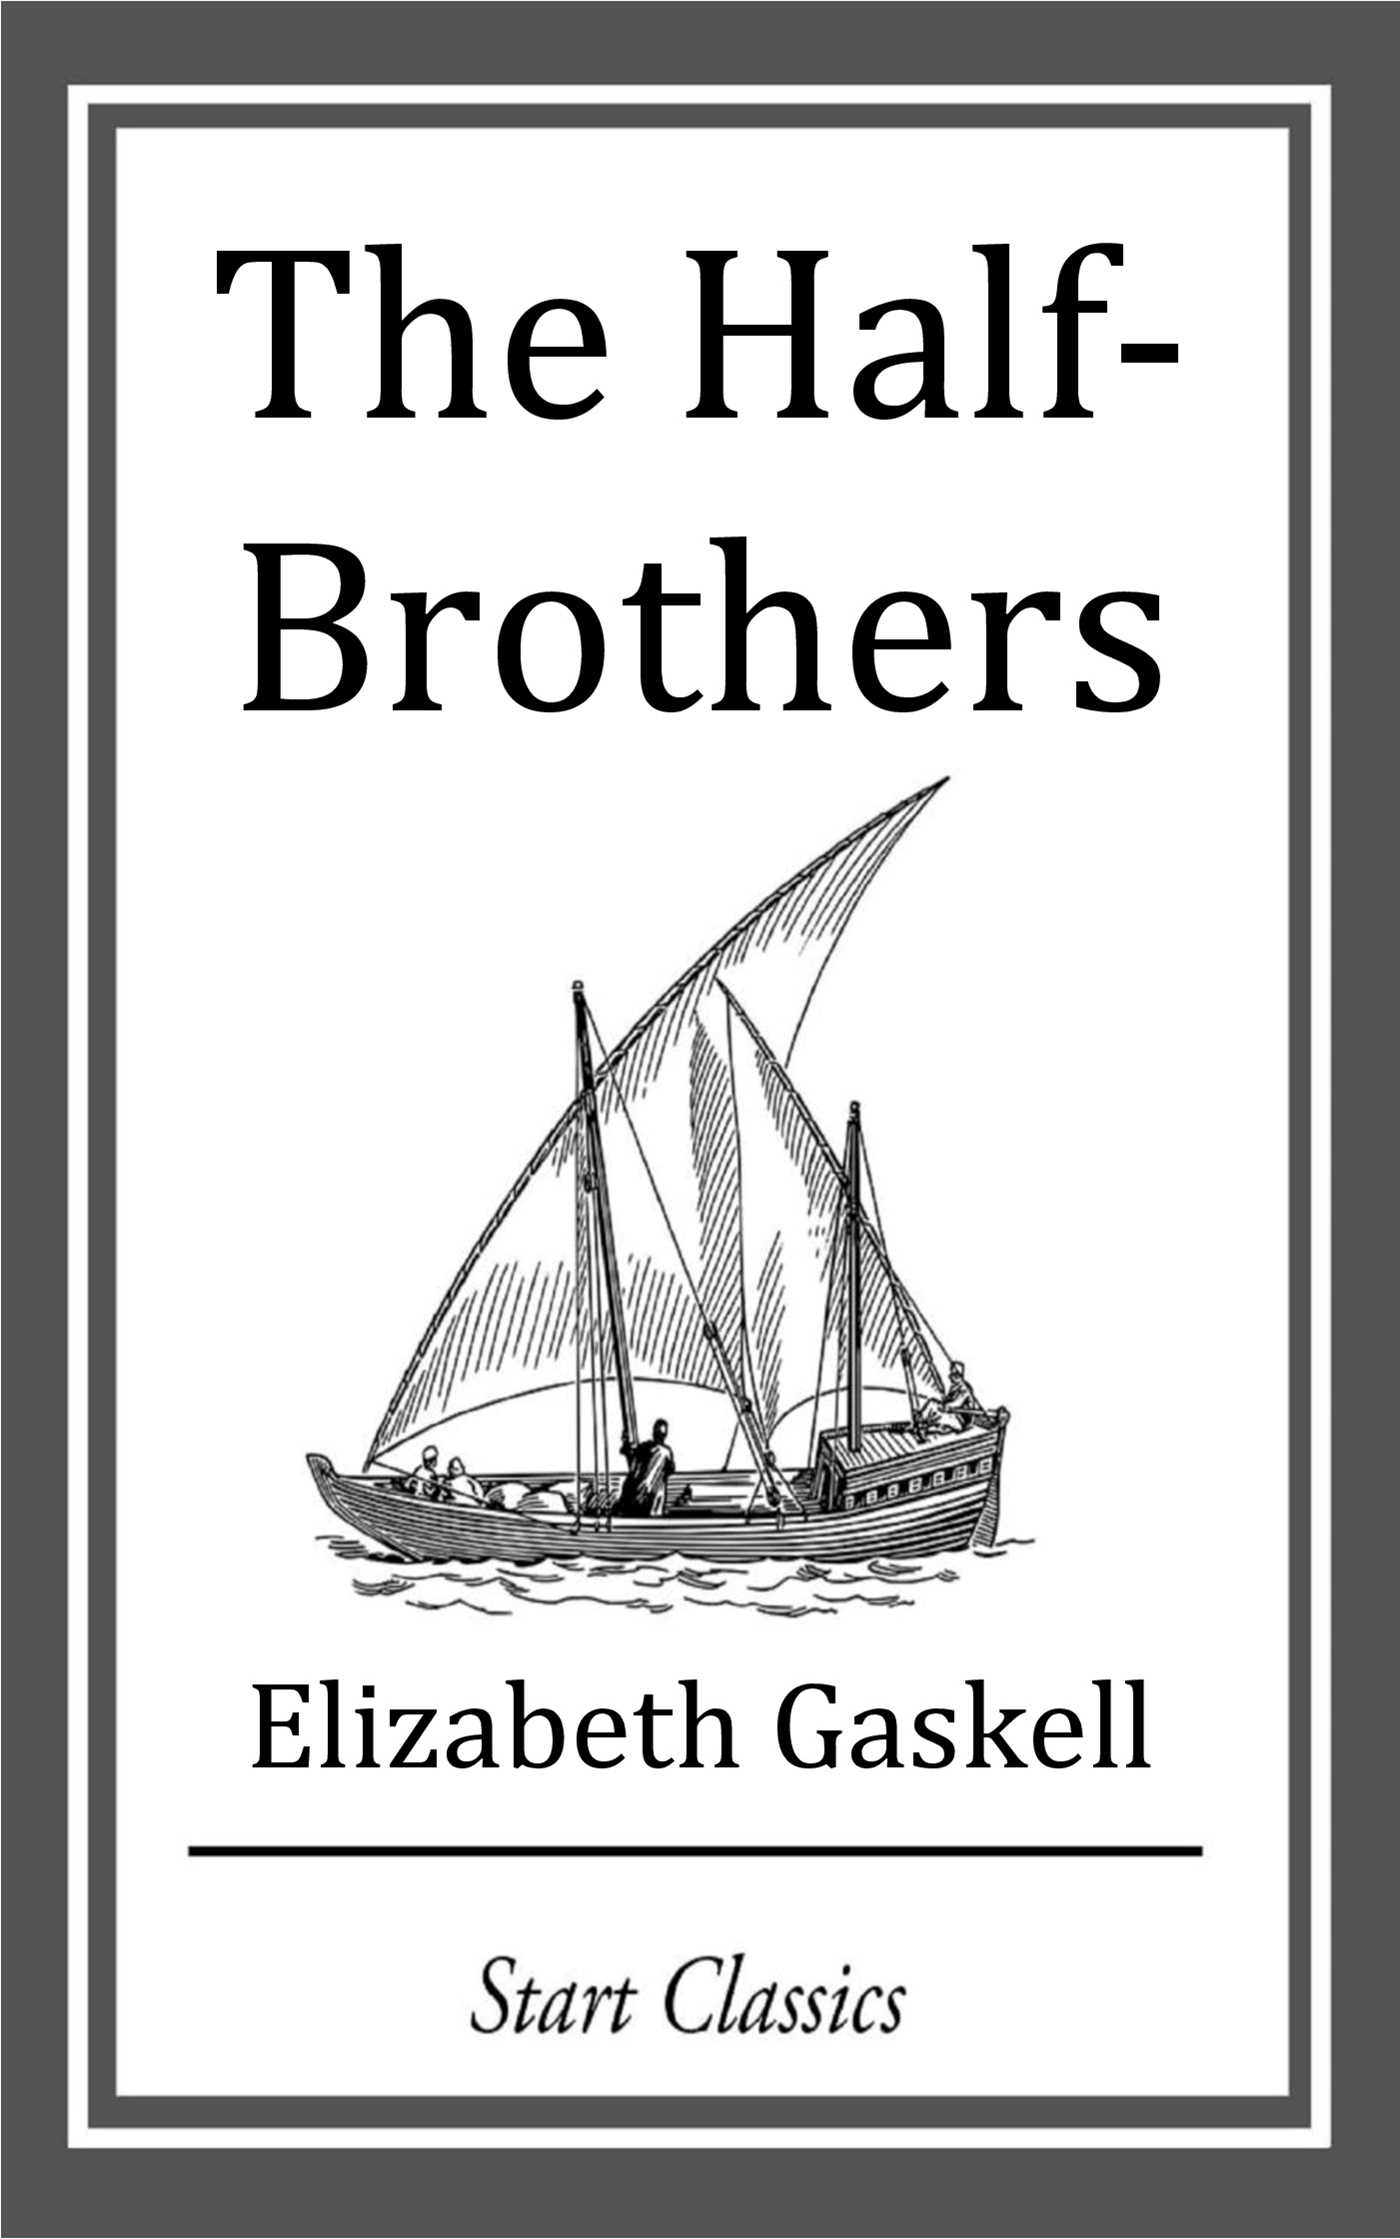 the half brothers essay According to holmes, hughes and julian, a couple starts as a family that grows to include children, who then have their own offspring 'if you include a divorce in this picture, new partners, step-parents, step-siblings and half-brothers and -sisters, you can see the boundaries of the family becoming more fluid' (holmes d/ hughes k / julian.